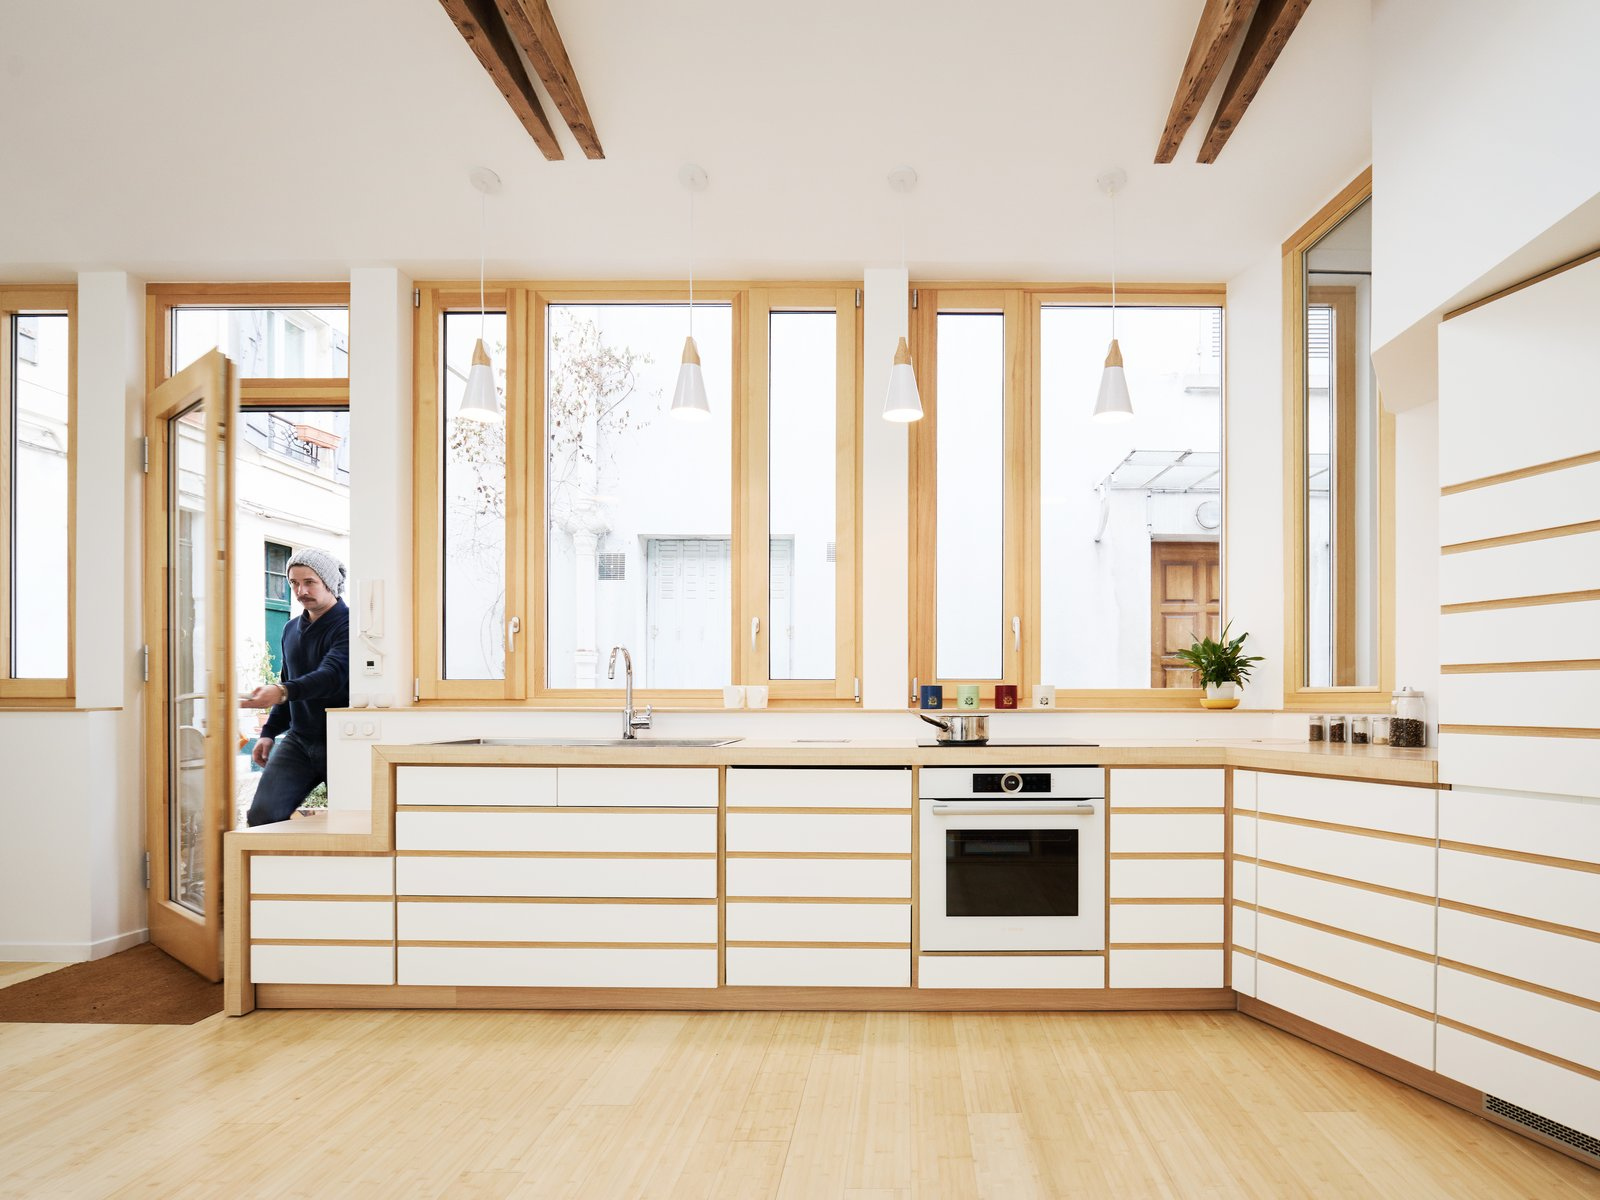 Kitchen, Drop In, Wall Oven, Light Hardwood, White, Wood, Pendant, Wood, and Cooktops The white cabinetry with beech wood details adds a little Zen to the kitchen.  Best Kitchen Wood Wood Drop In Pendant Photos from Before & After: A Renovated Artist's Studio Is Now an Airy, Efficient Home